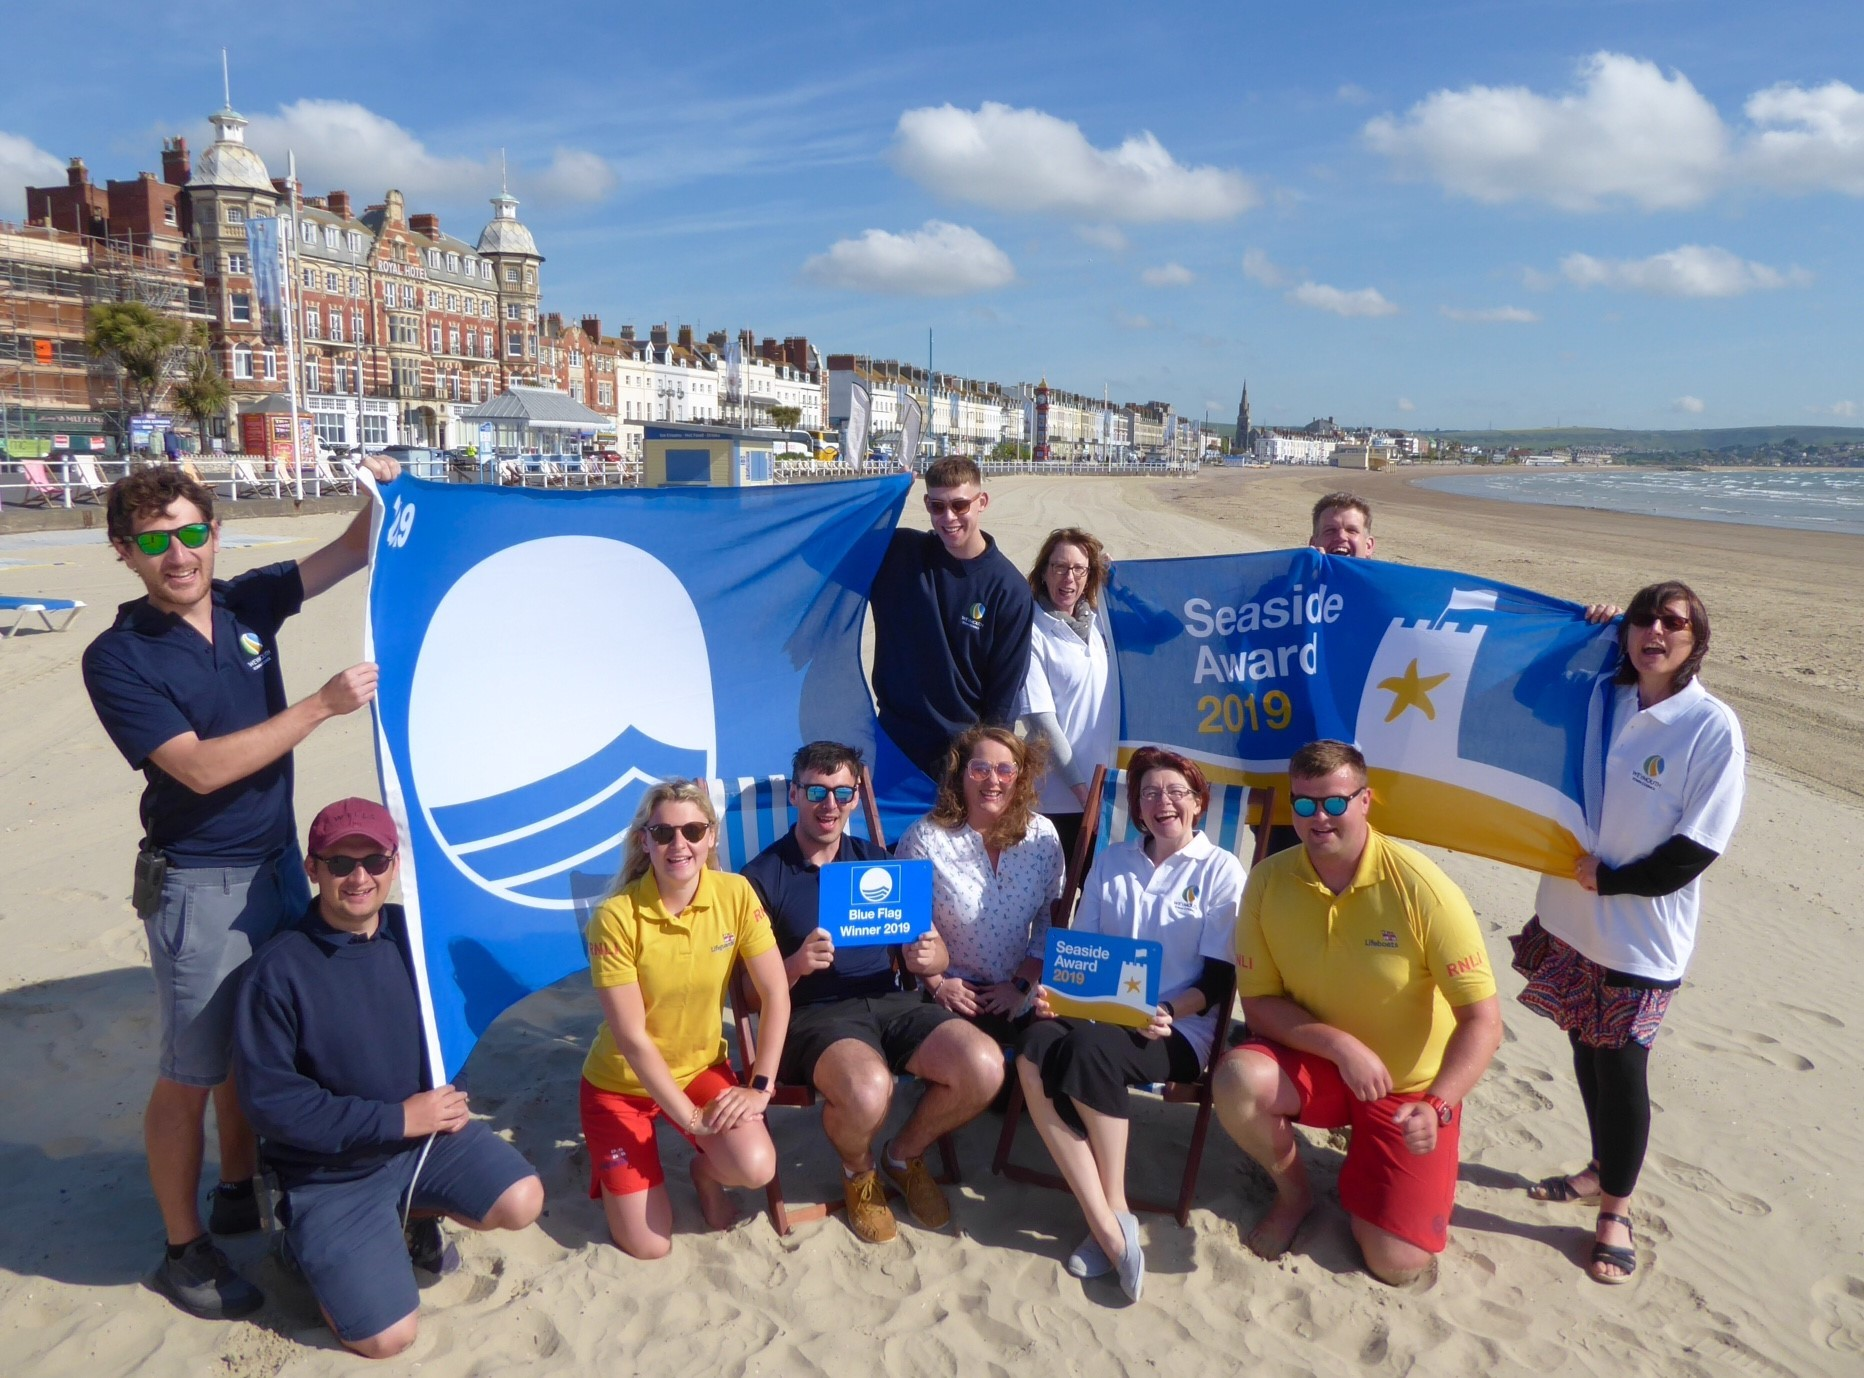 Weymouth Town Council Clerk Jane Biscombe is joined by Town Council Staff and Beach Lifeguards to celebrate the Blue Flag and National Seaside Award for Weymouth Beach